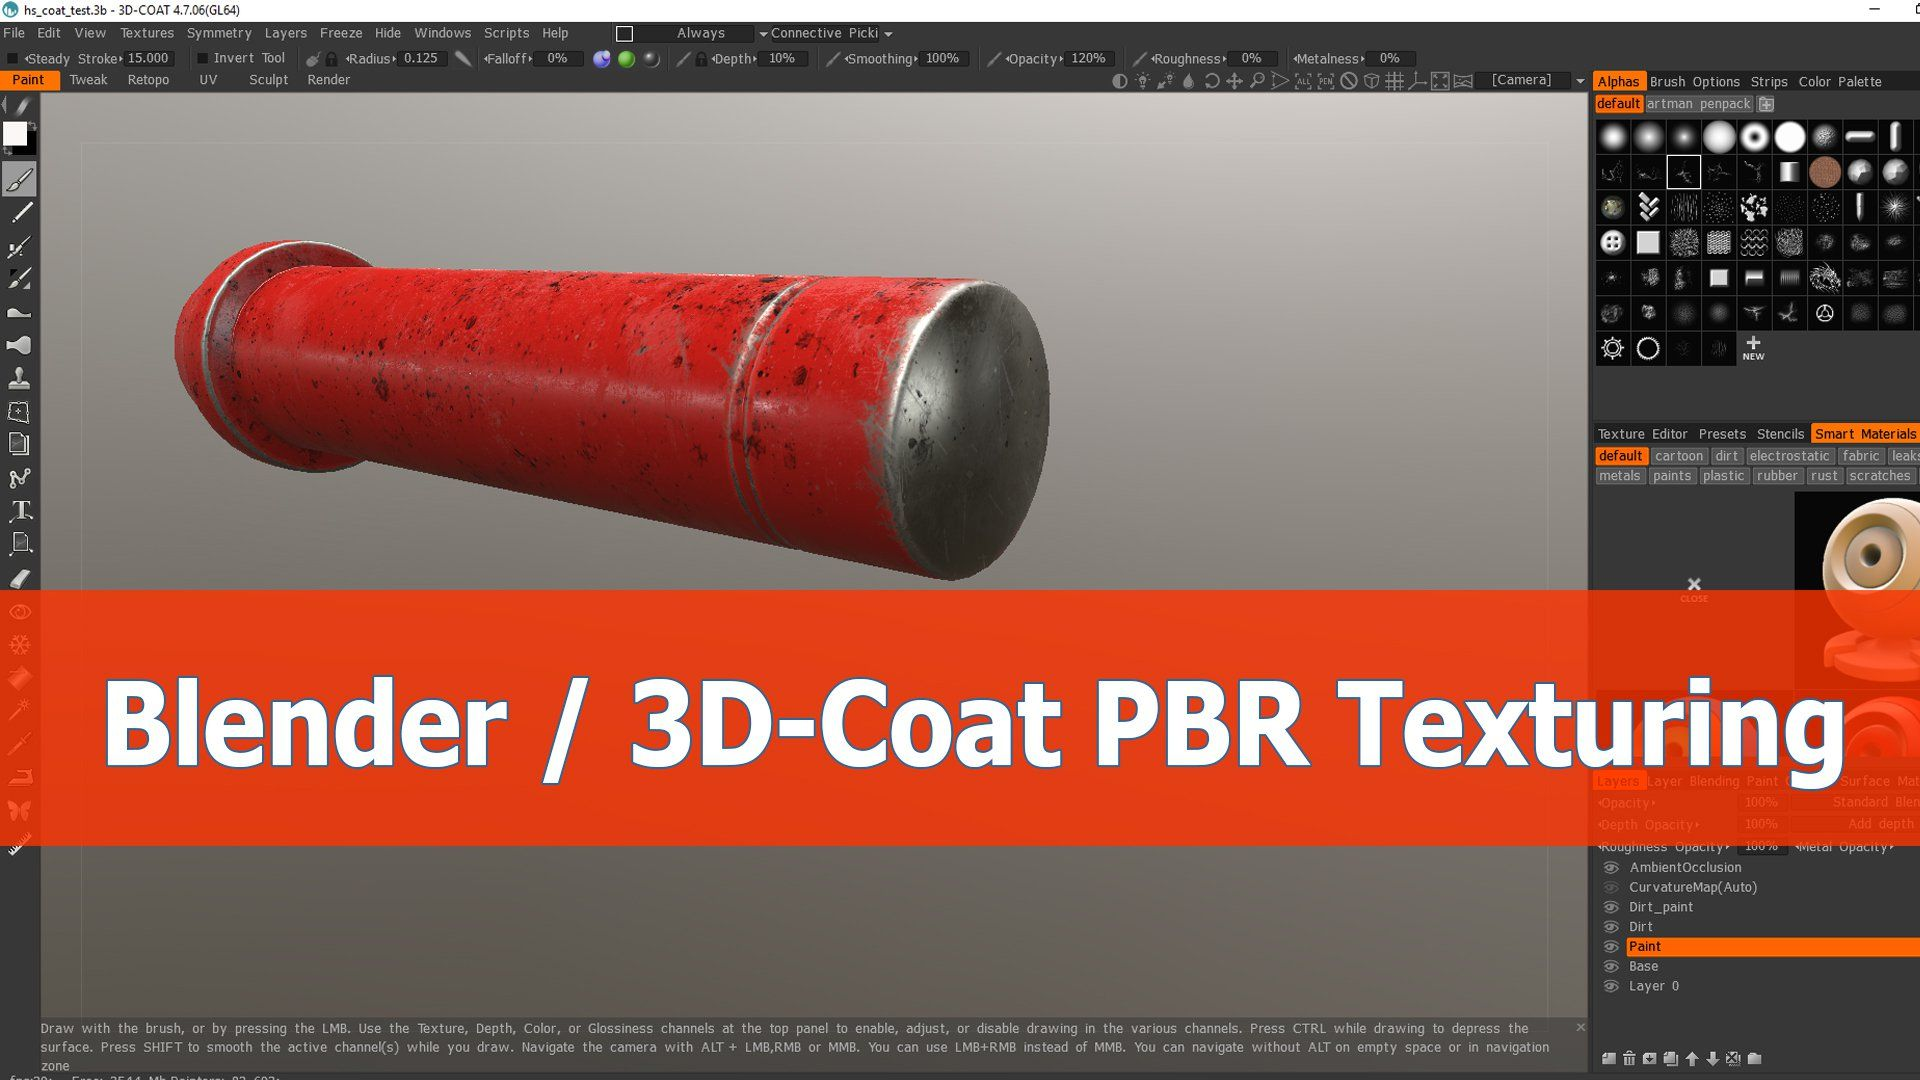 Blender and 3DCoat workflow for PBR texturing